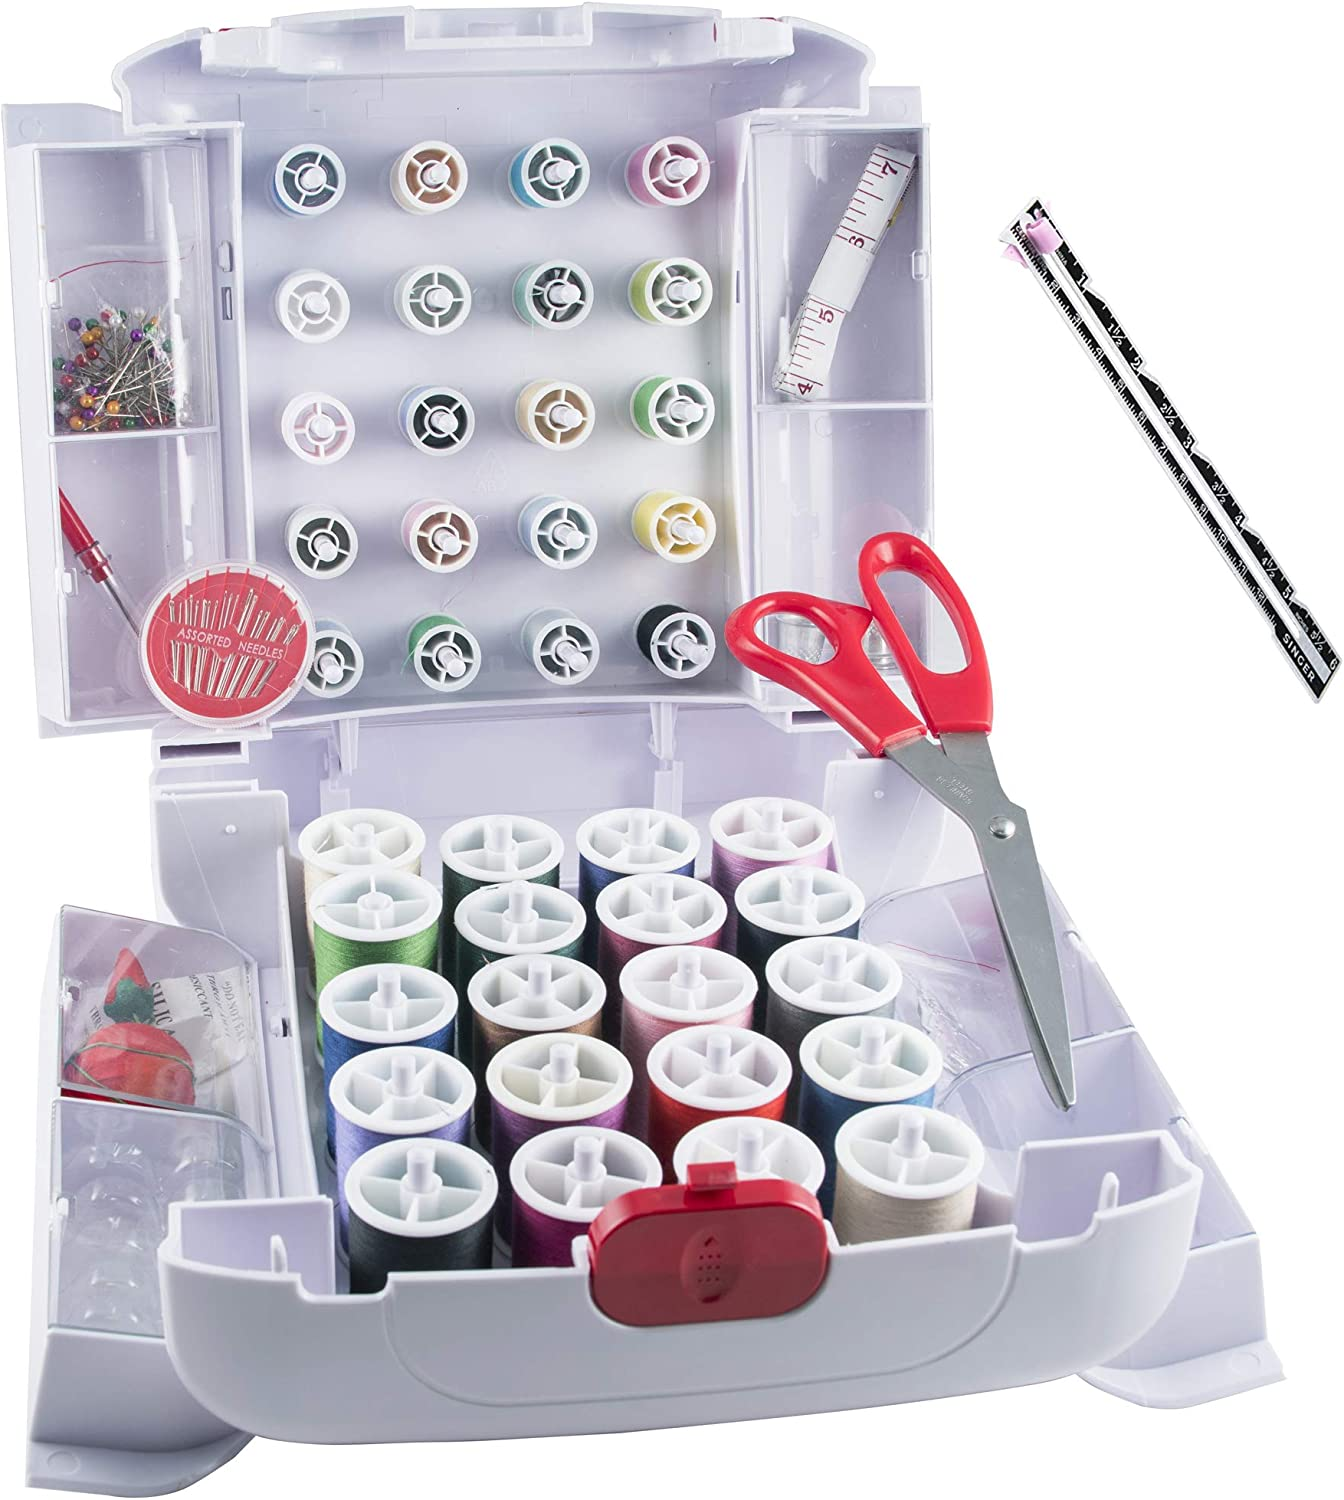 SINGER SEWING KIT WITH SEWING KIT ACCESSORIES MULTI-COLOR